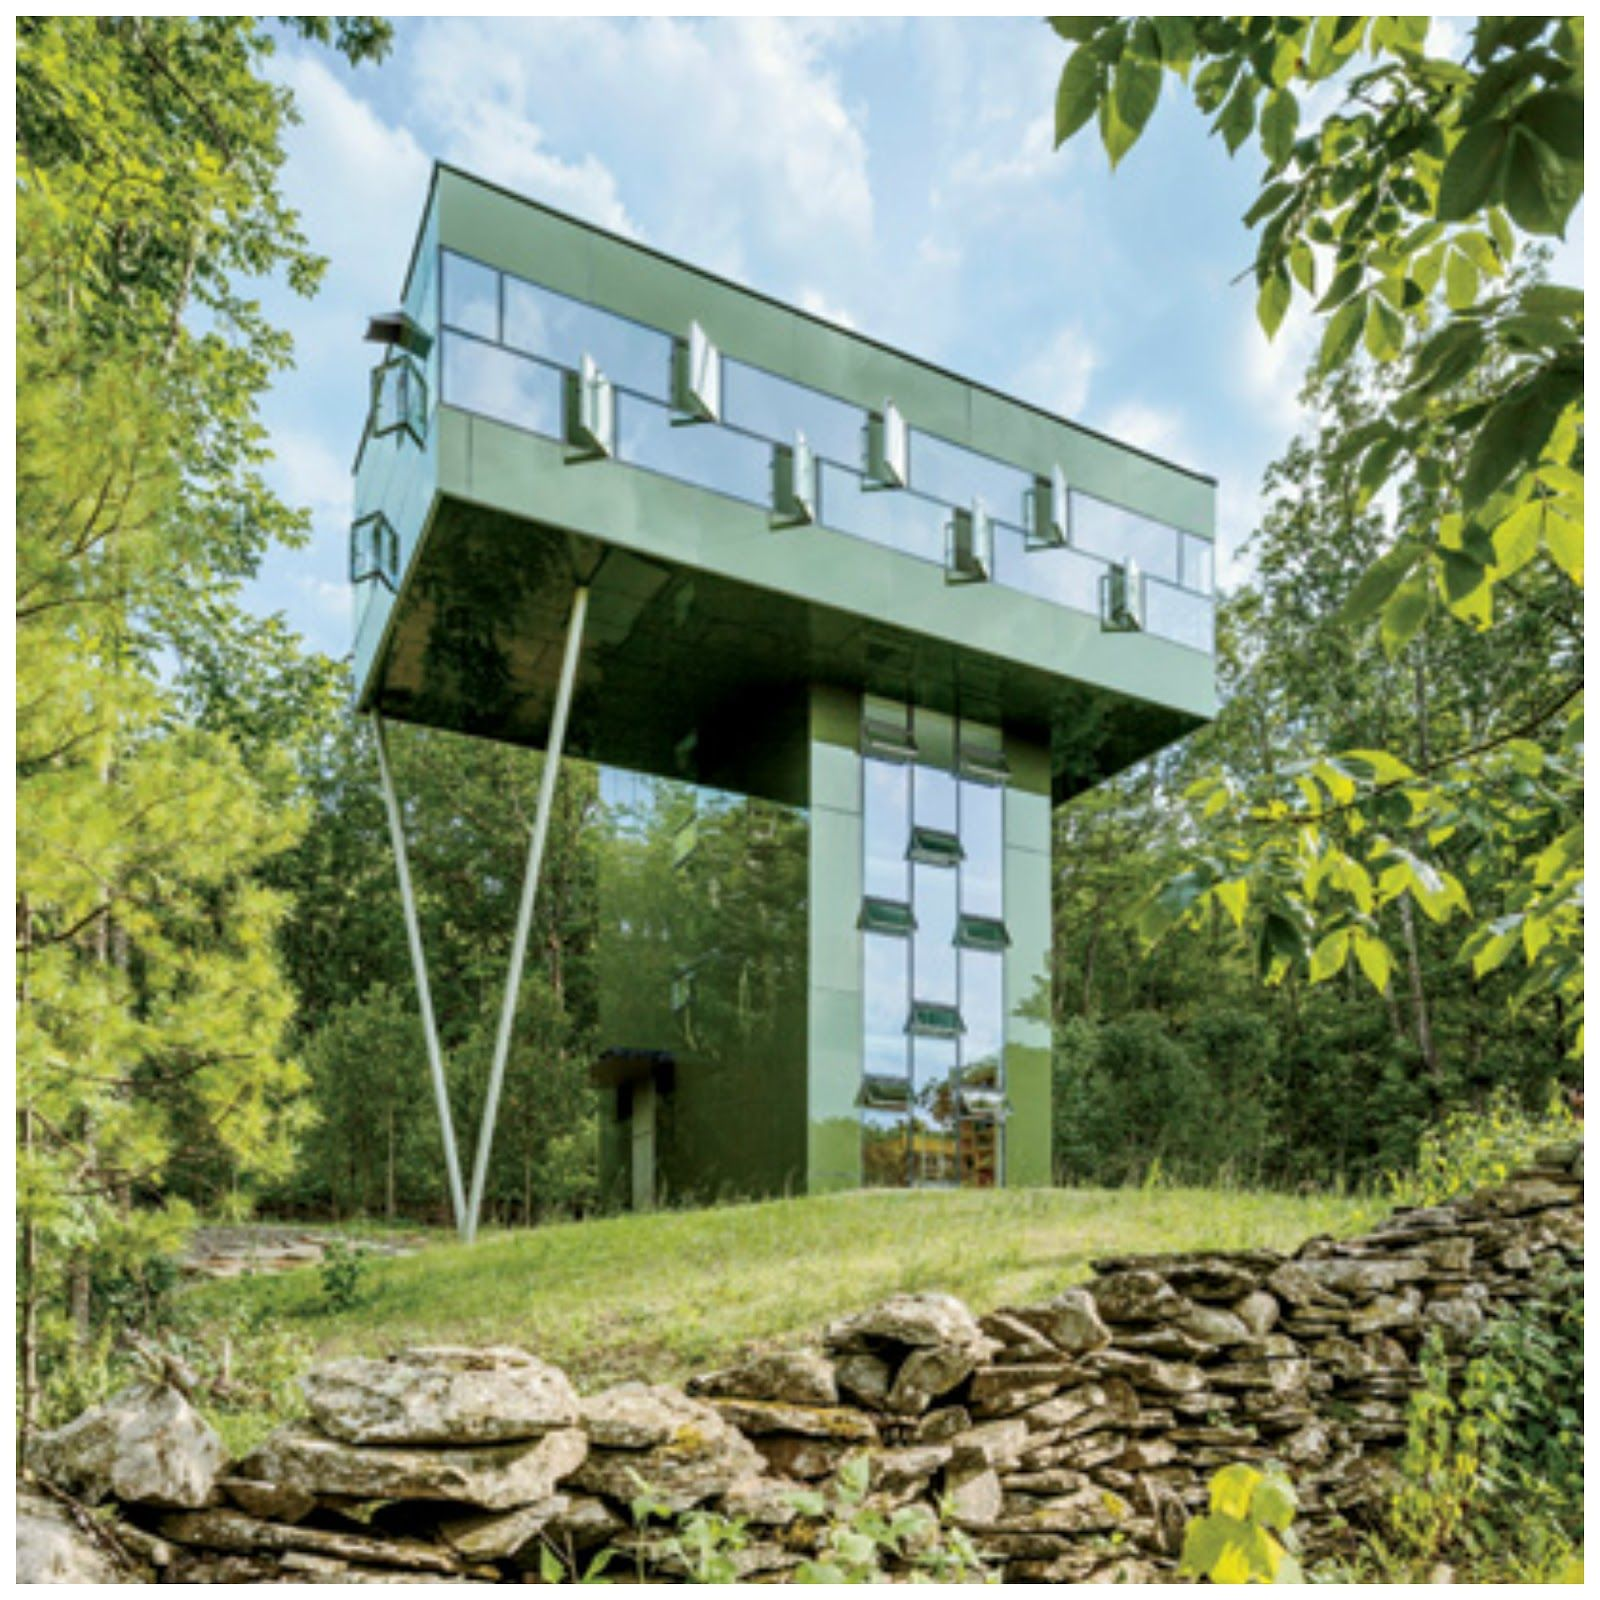 Superior Find This Pin And More On Le Terrain, Au Coeur De Lu0027architecture... By  Terrainca. Tower House ...